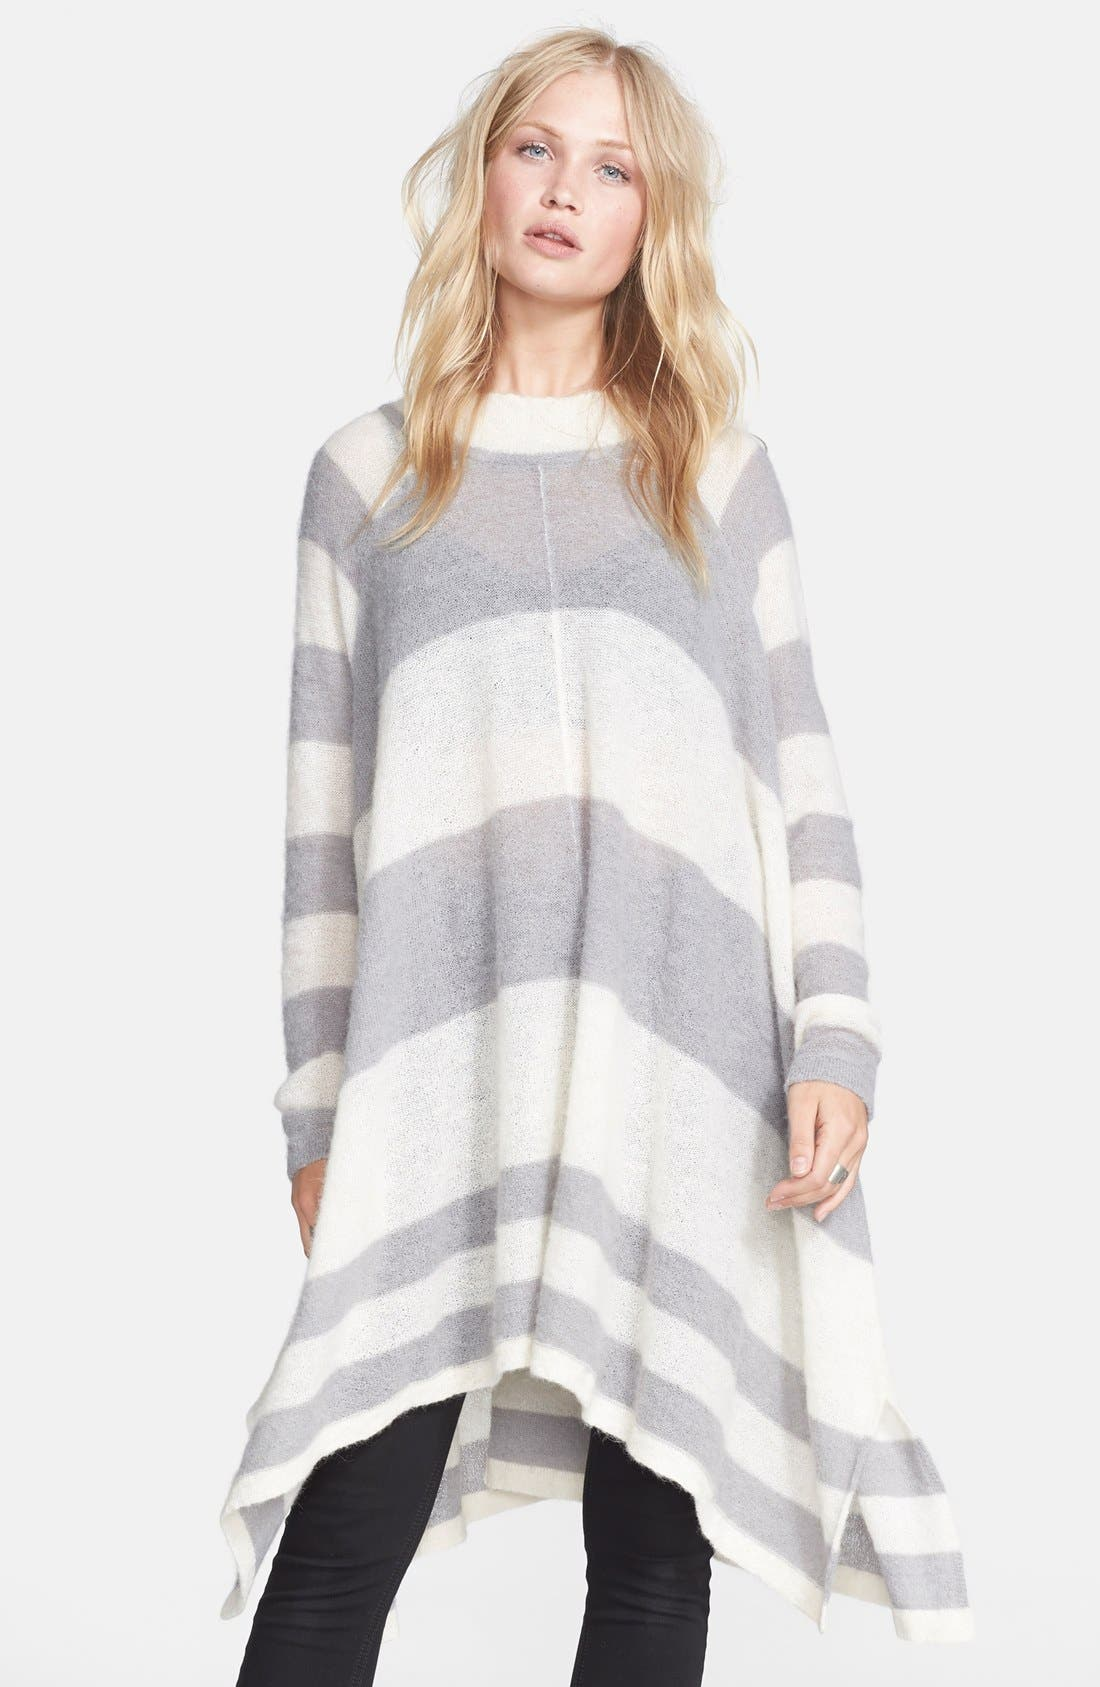 FREE PEOPLE 'Lafayette' Stripe Alpaca Blend Poncho, Main, color, 020